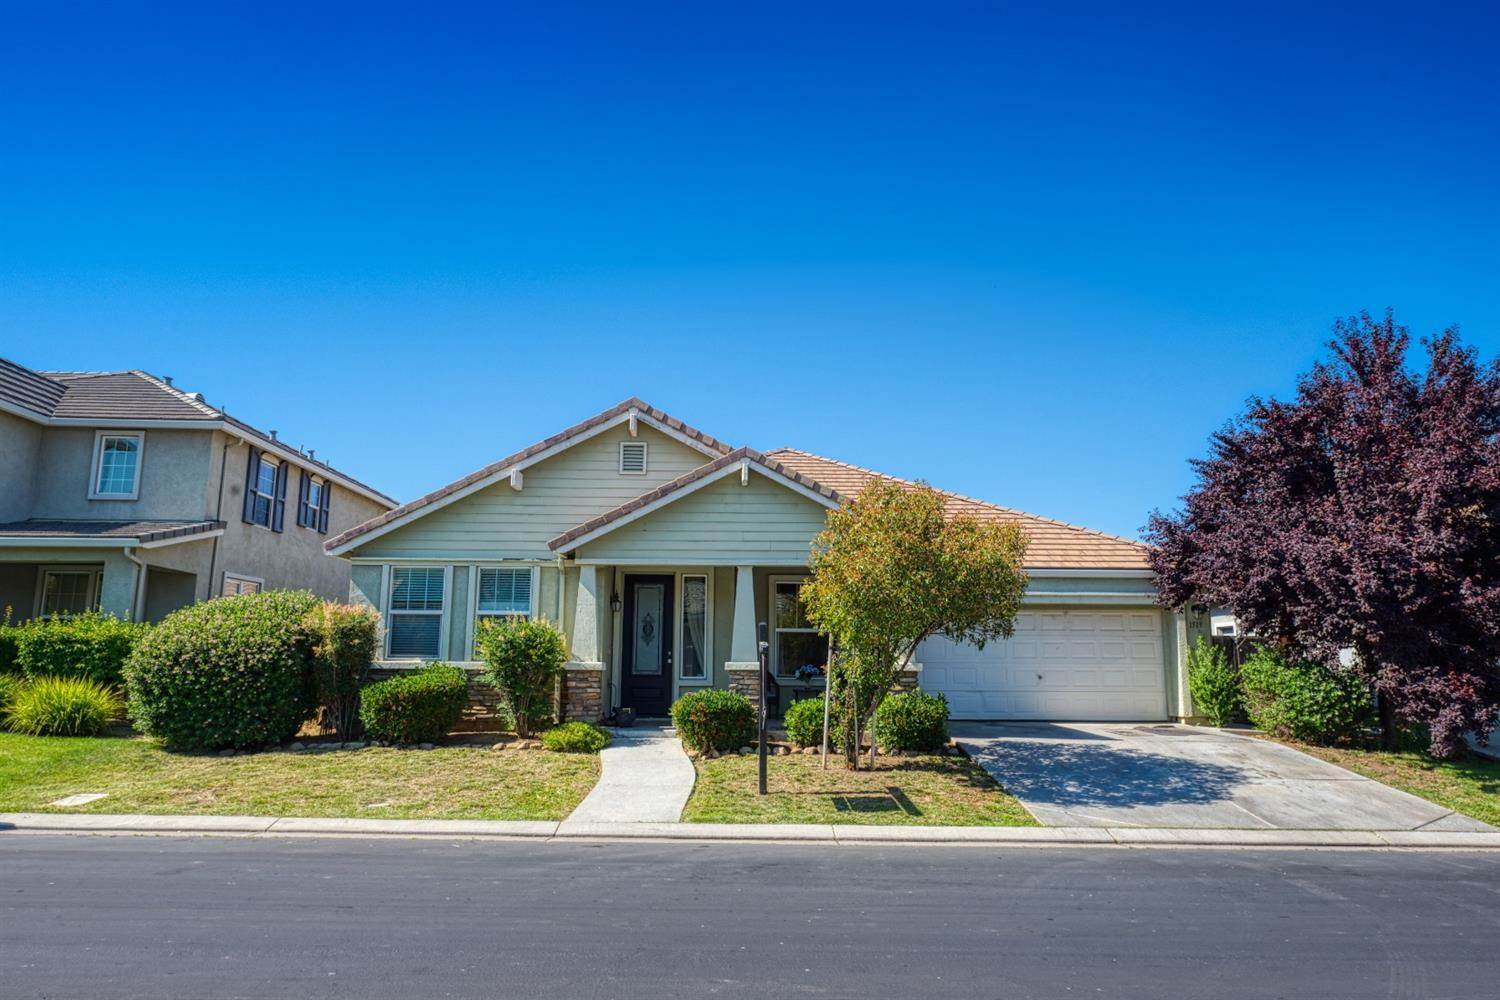 1519 Horizon Lane, Patterson, California